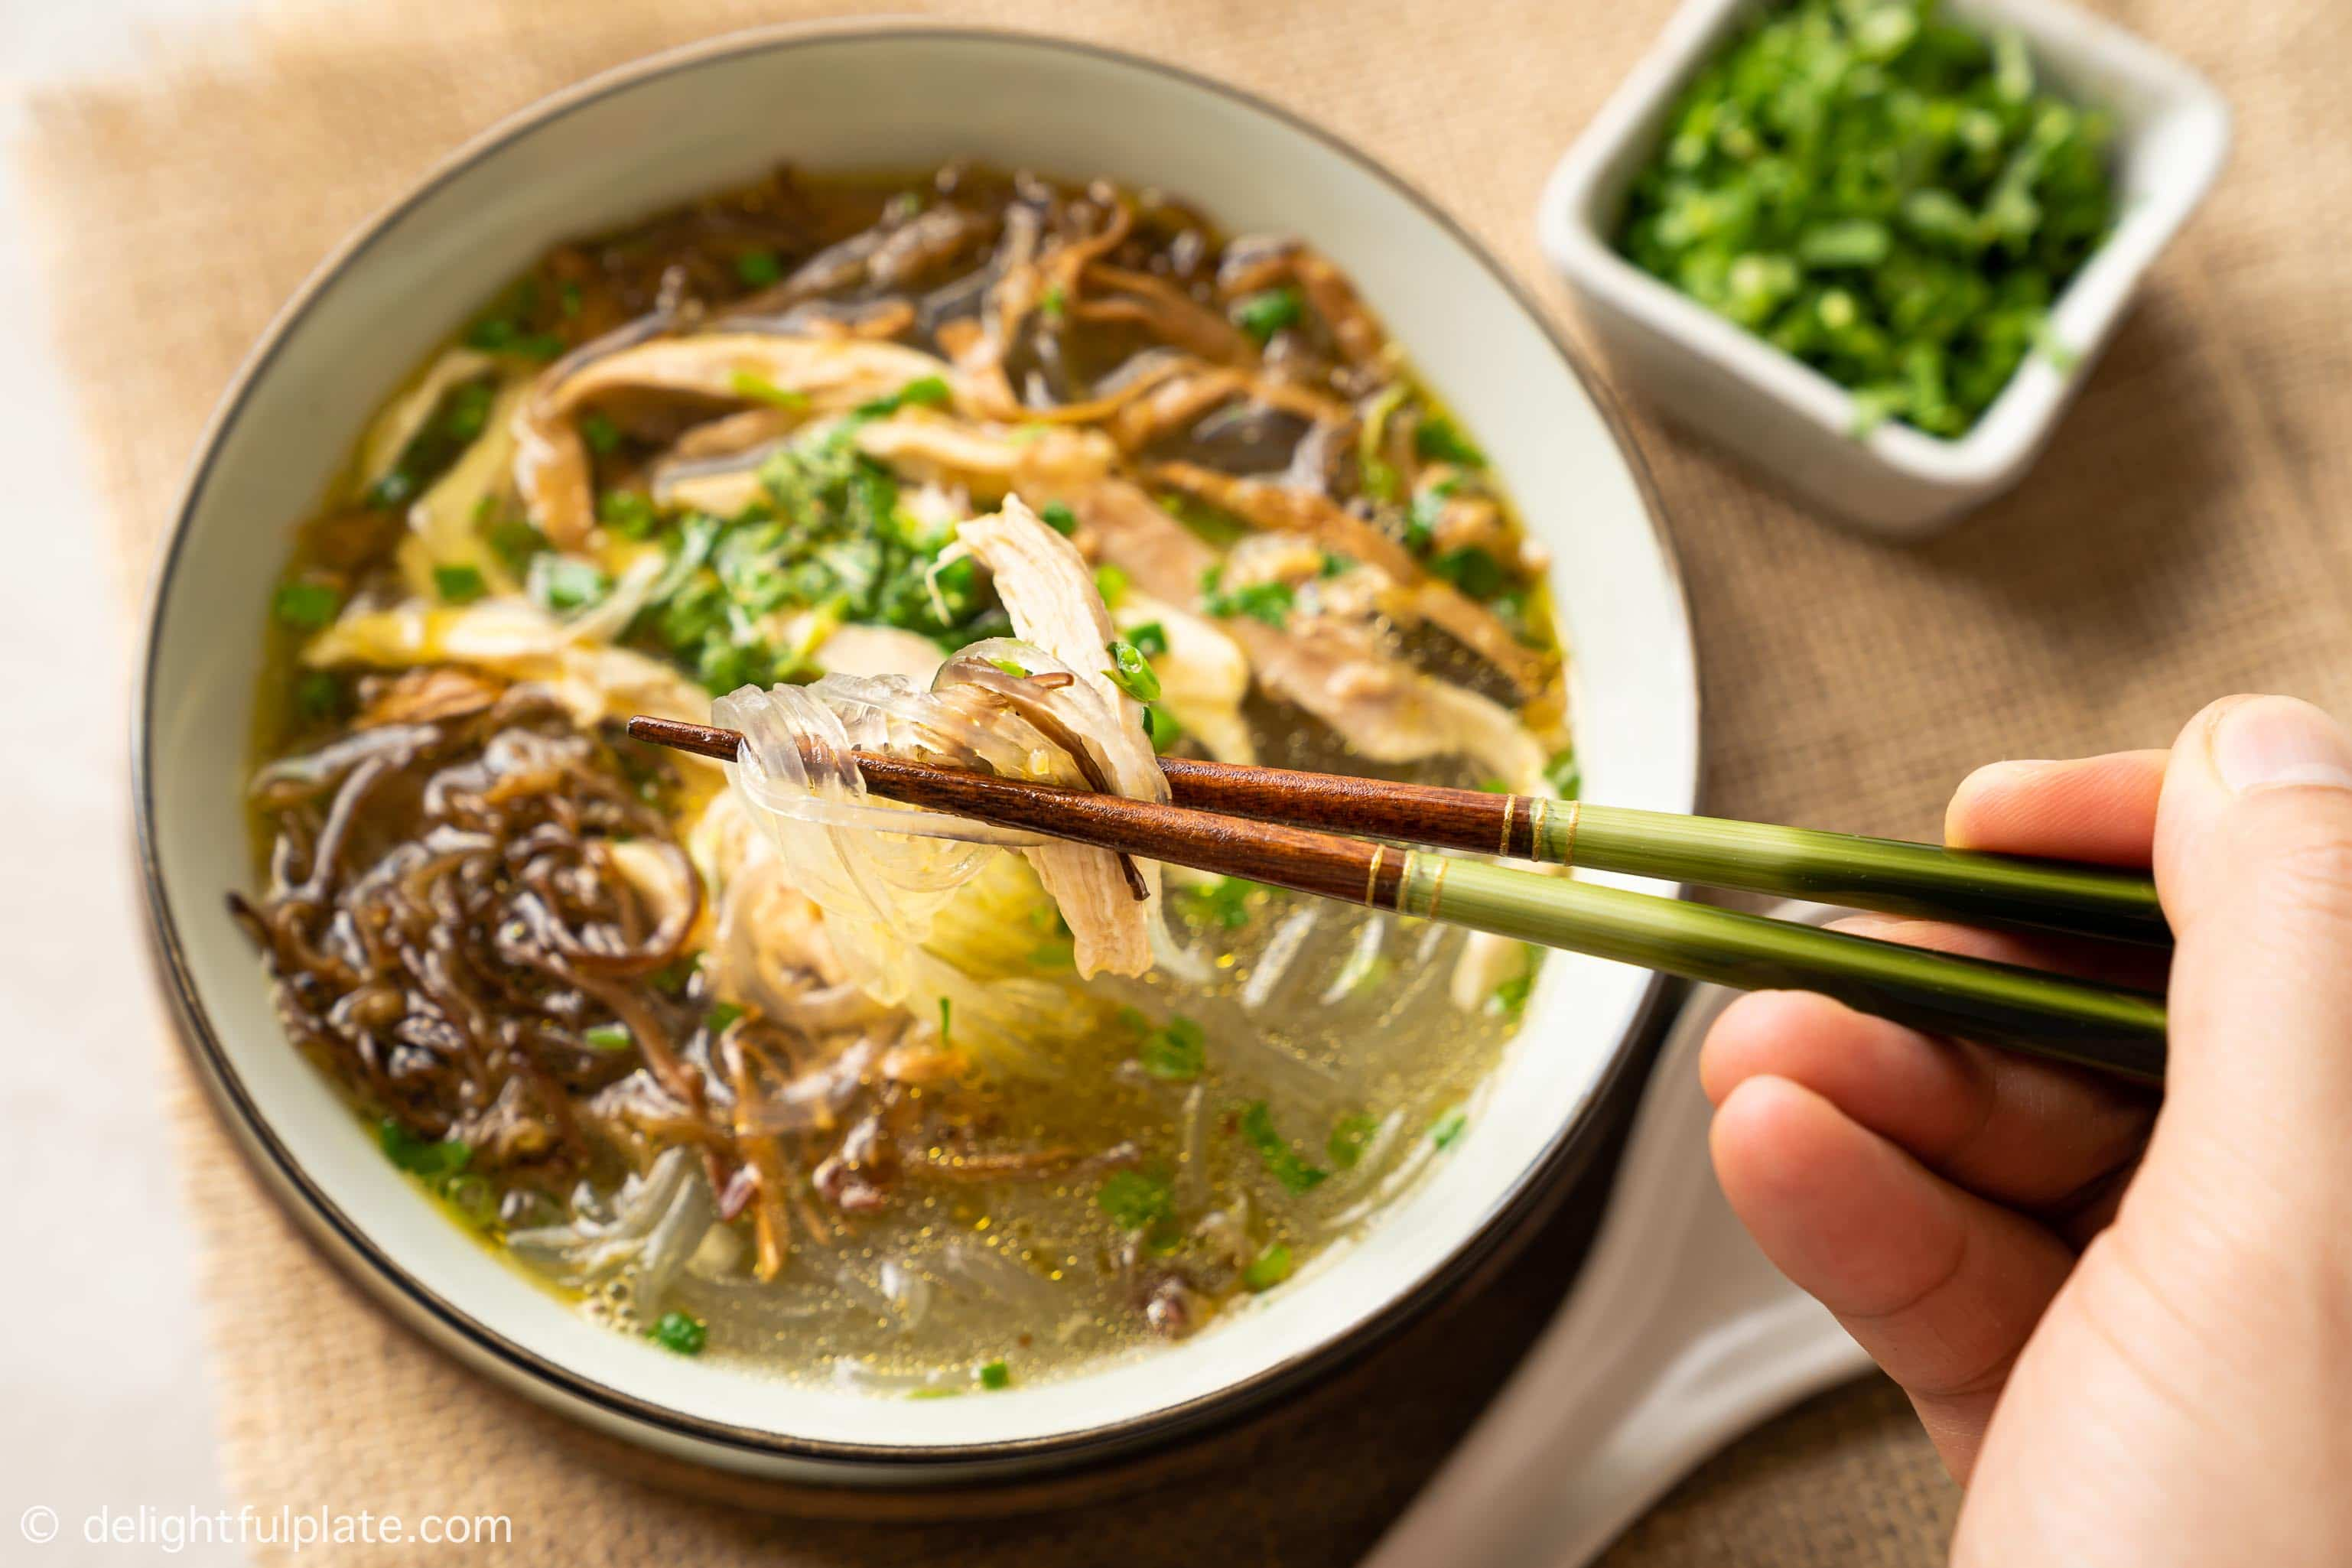 picking up chicken glass noodle soup from a bowl with chopsticks